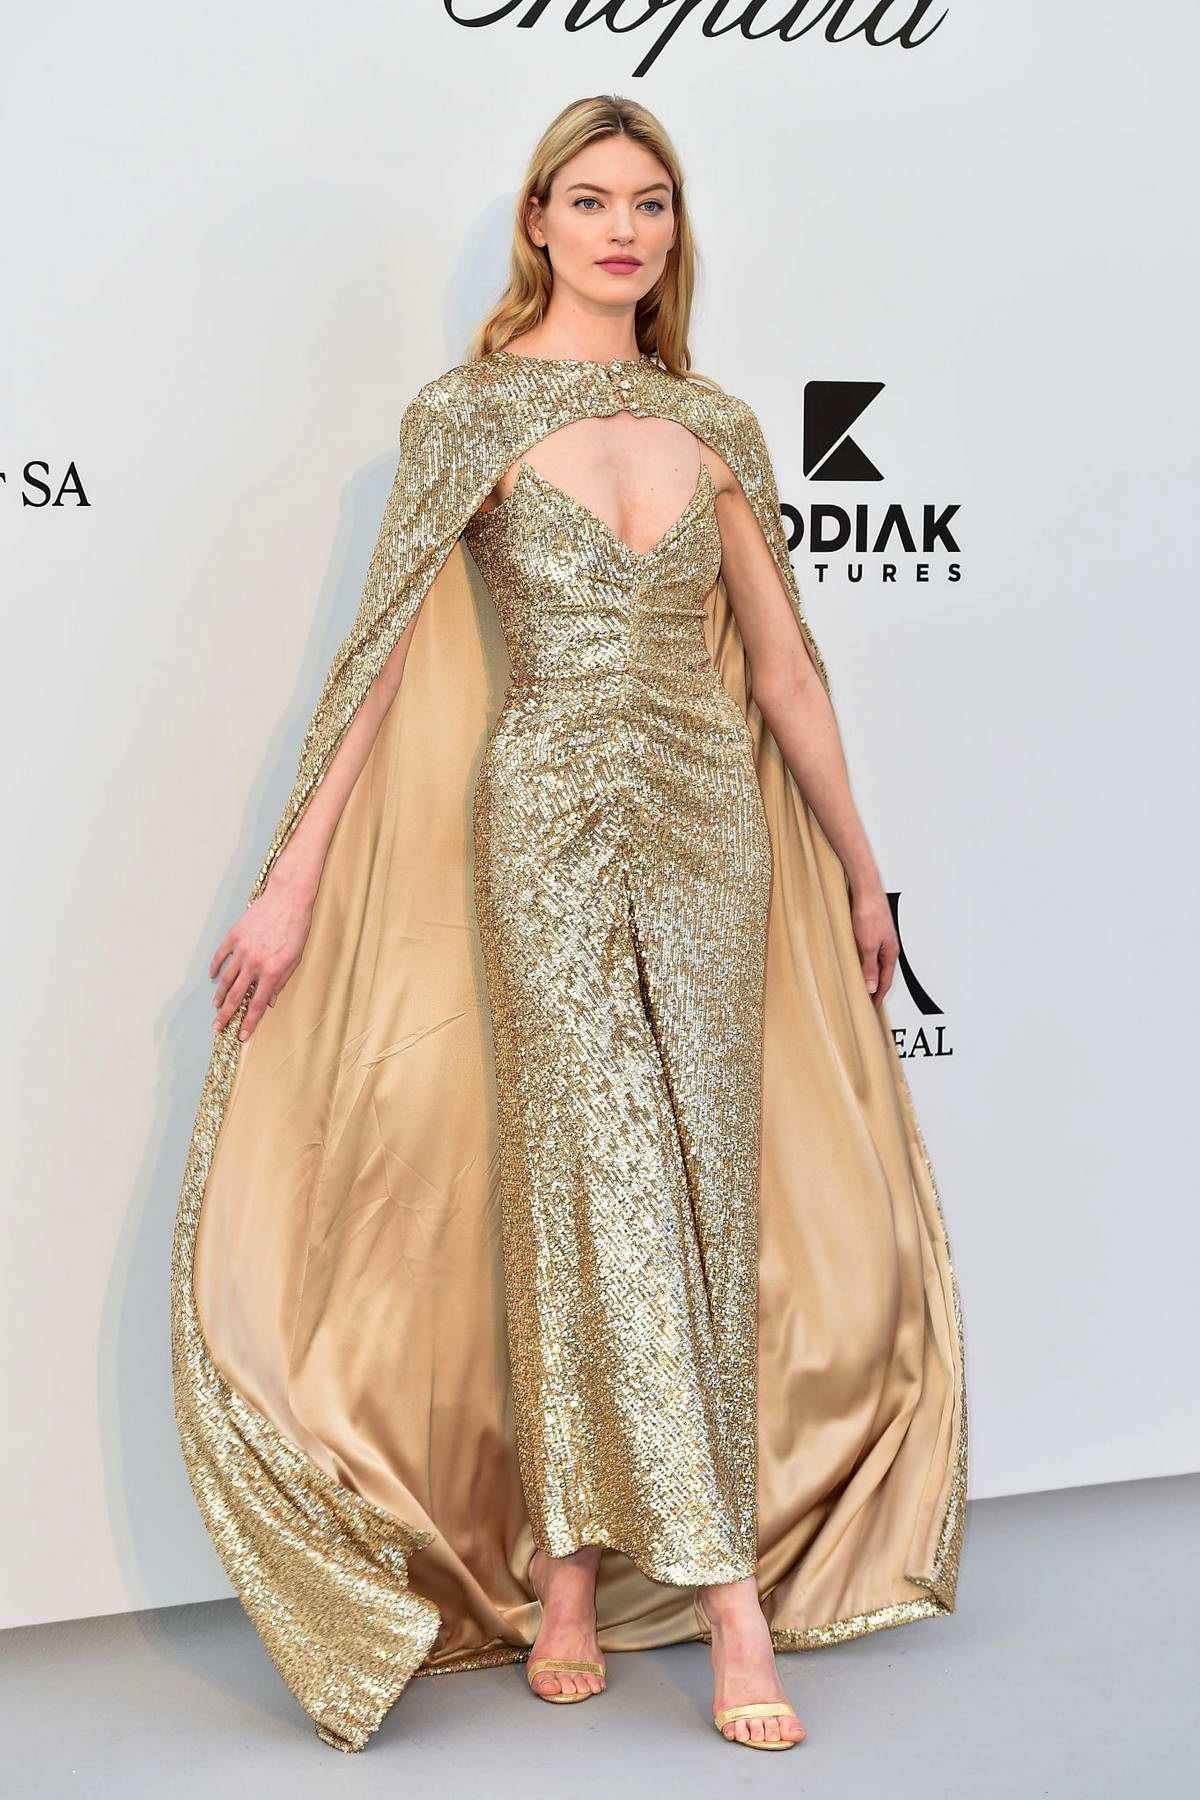 Martha Hunt attends the 26th amfAR Gala held at Hotel du Cap-Eden-Roc during the 72nd annual Cannes Film Festival in Cannes, France